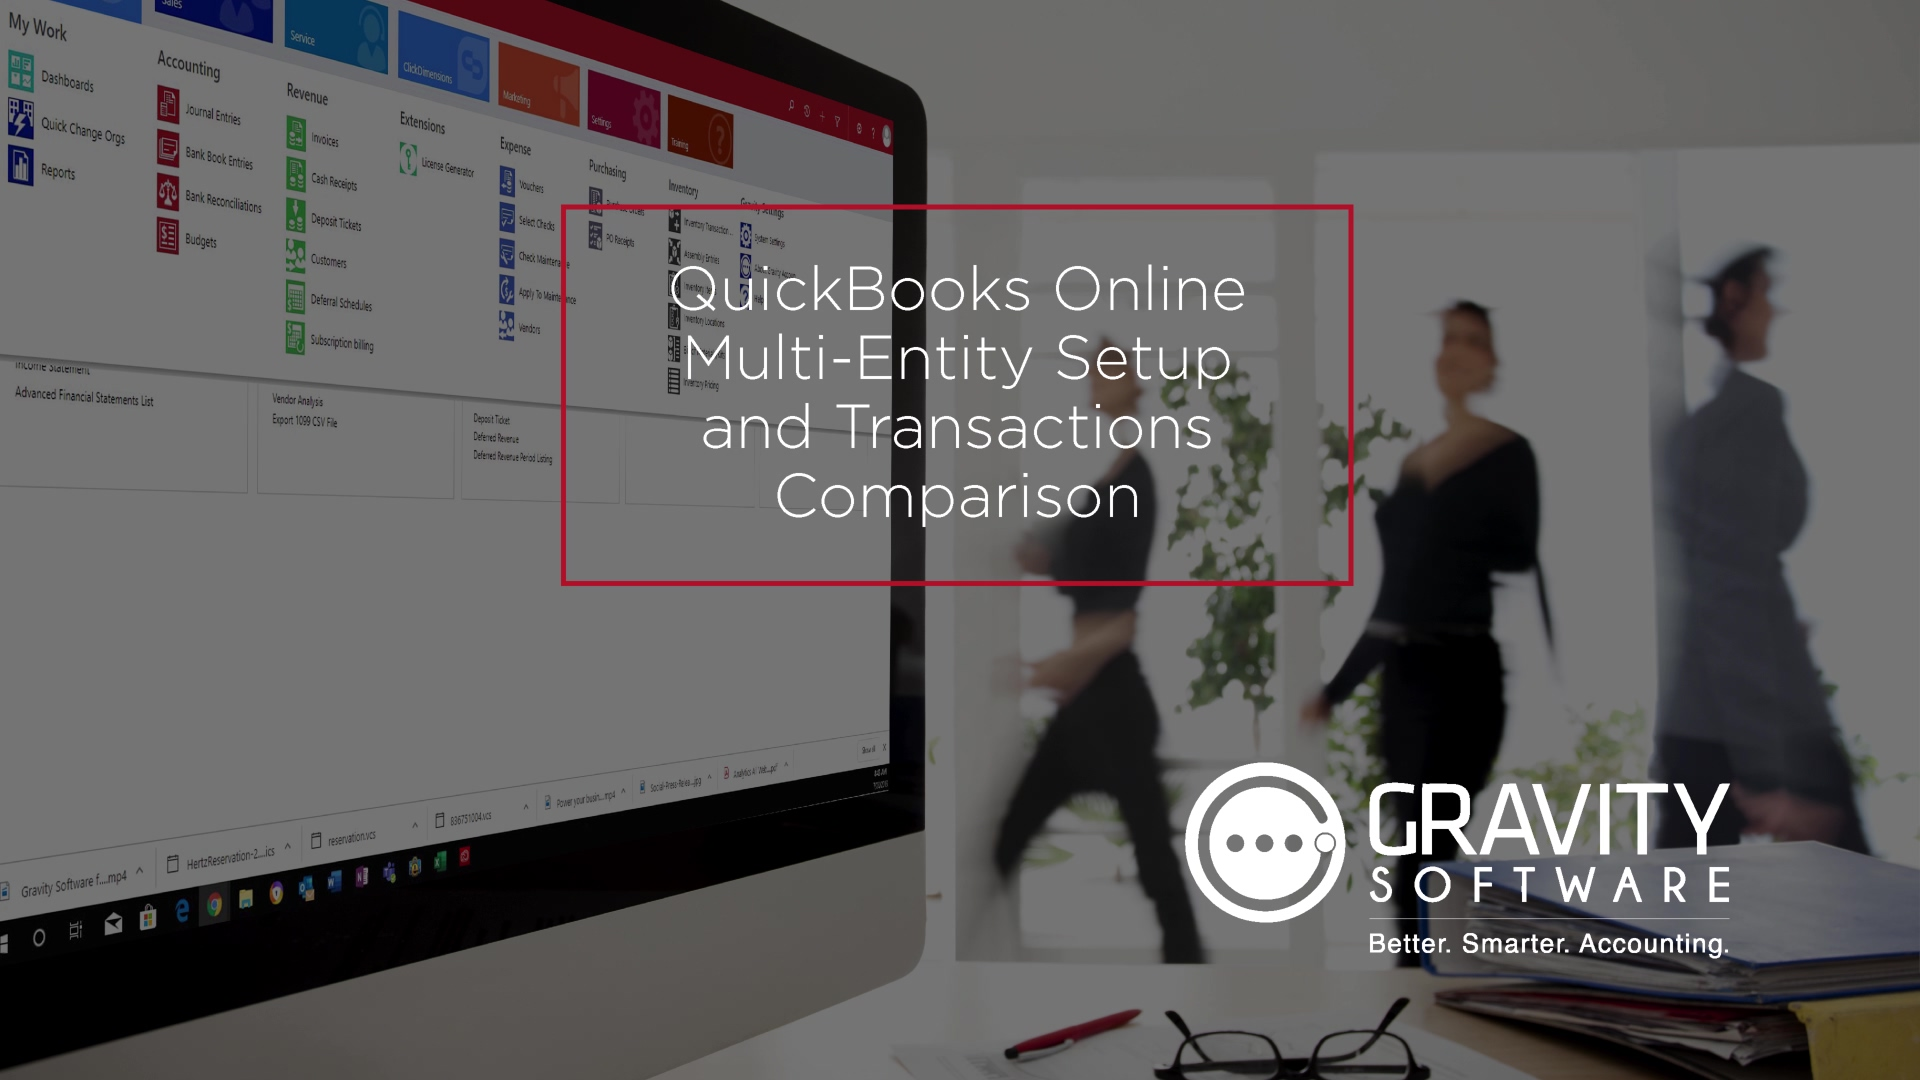 Gravity Software and QuickBooks Online Multi-Entity Setup and Transactions Comparisons-1